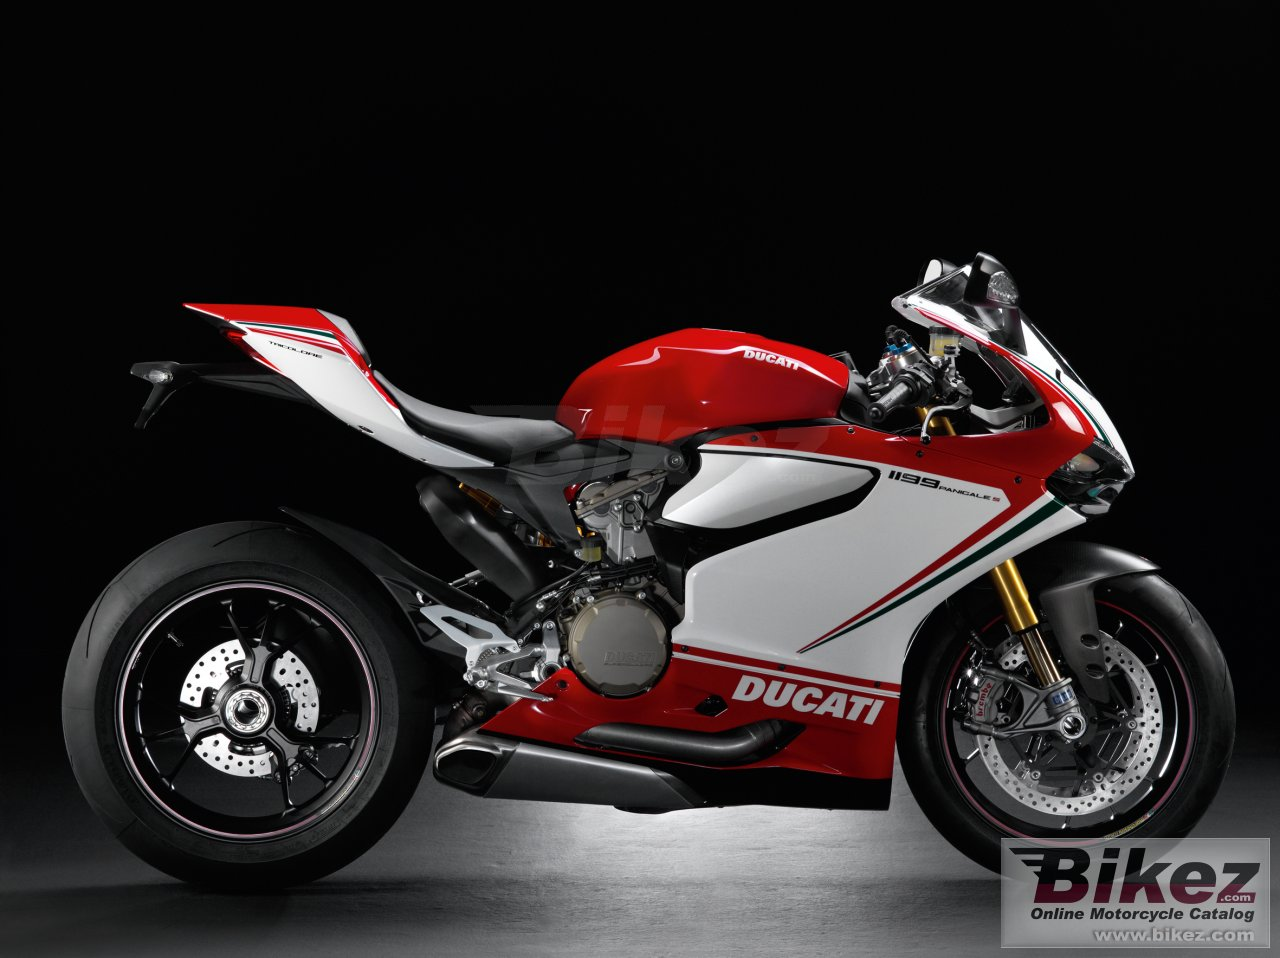 Big Ducati 1199 panigale s tricolore picture and wallpaper from Bikez.com